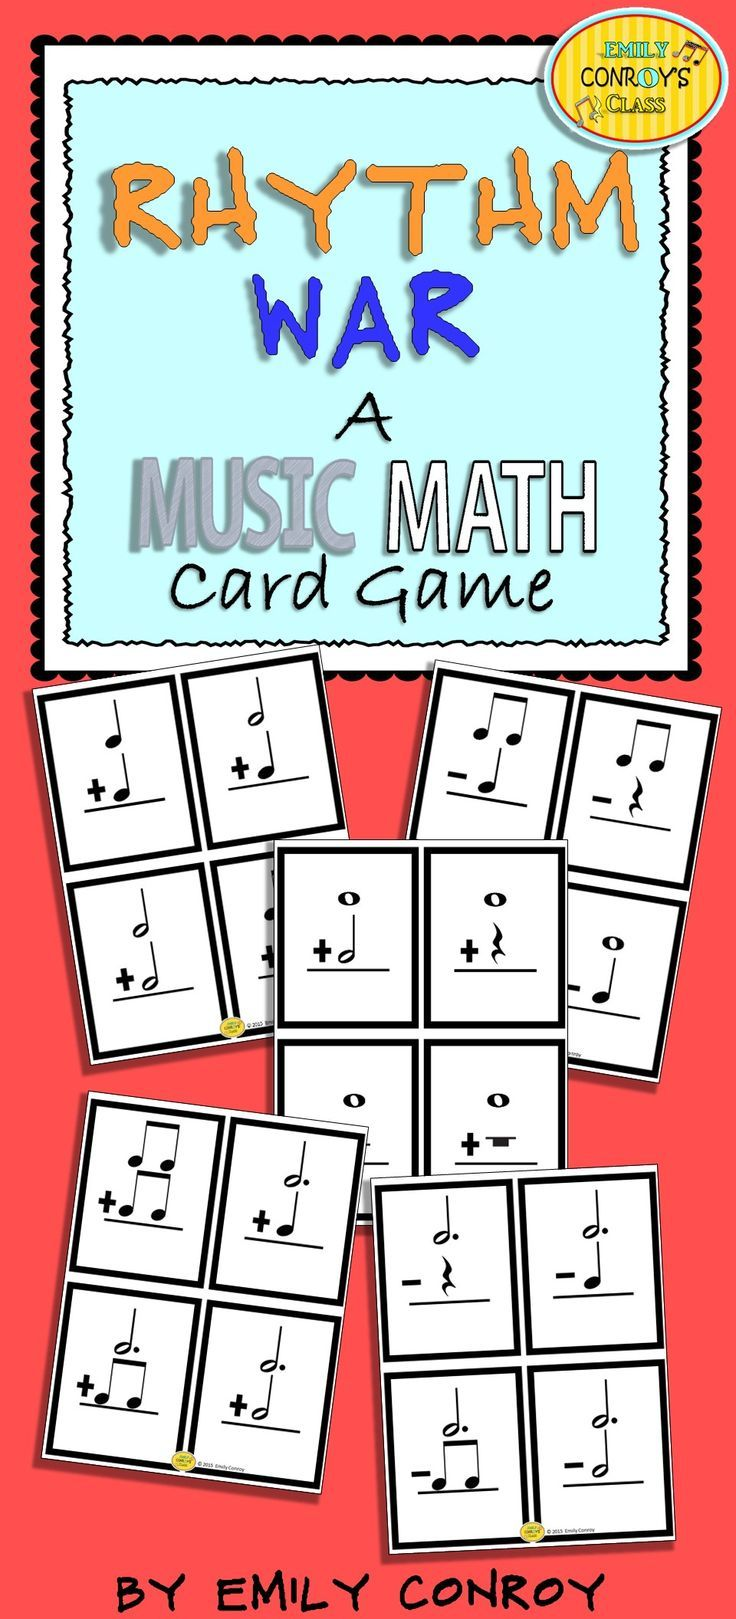 Music Math Contains 64 Addition And Subtraction Music Math Cards For Independent Review Or Use In Music Math Music Education Activities Elementary Music Games Math war addition and subtraction game